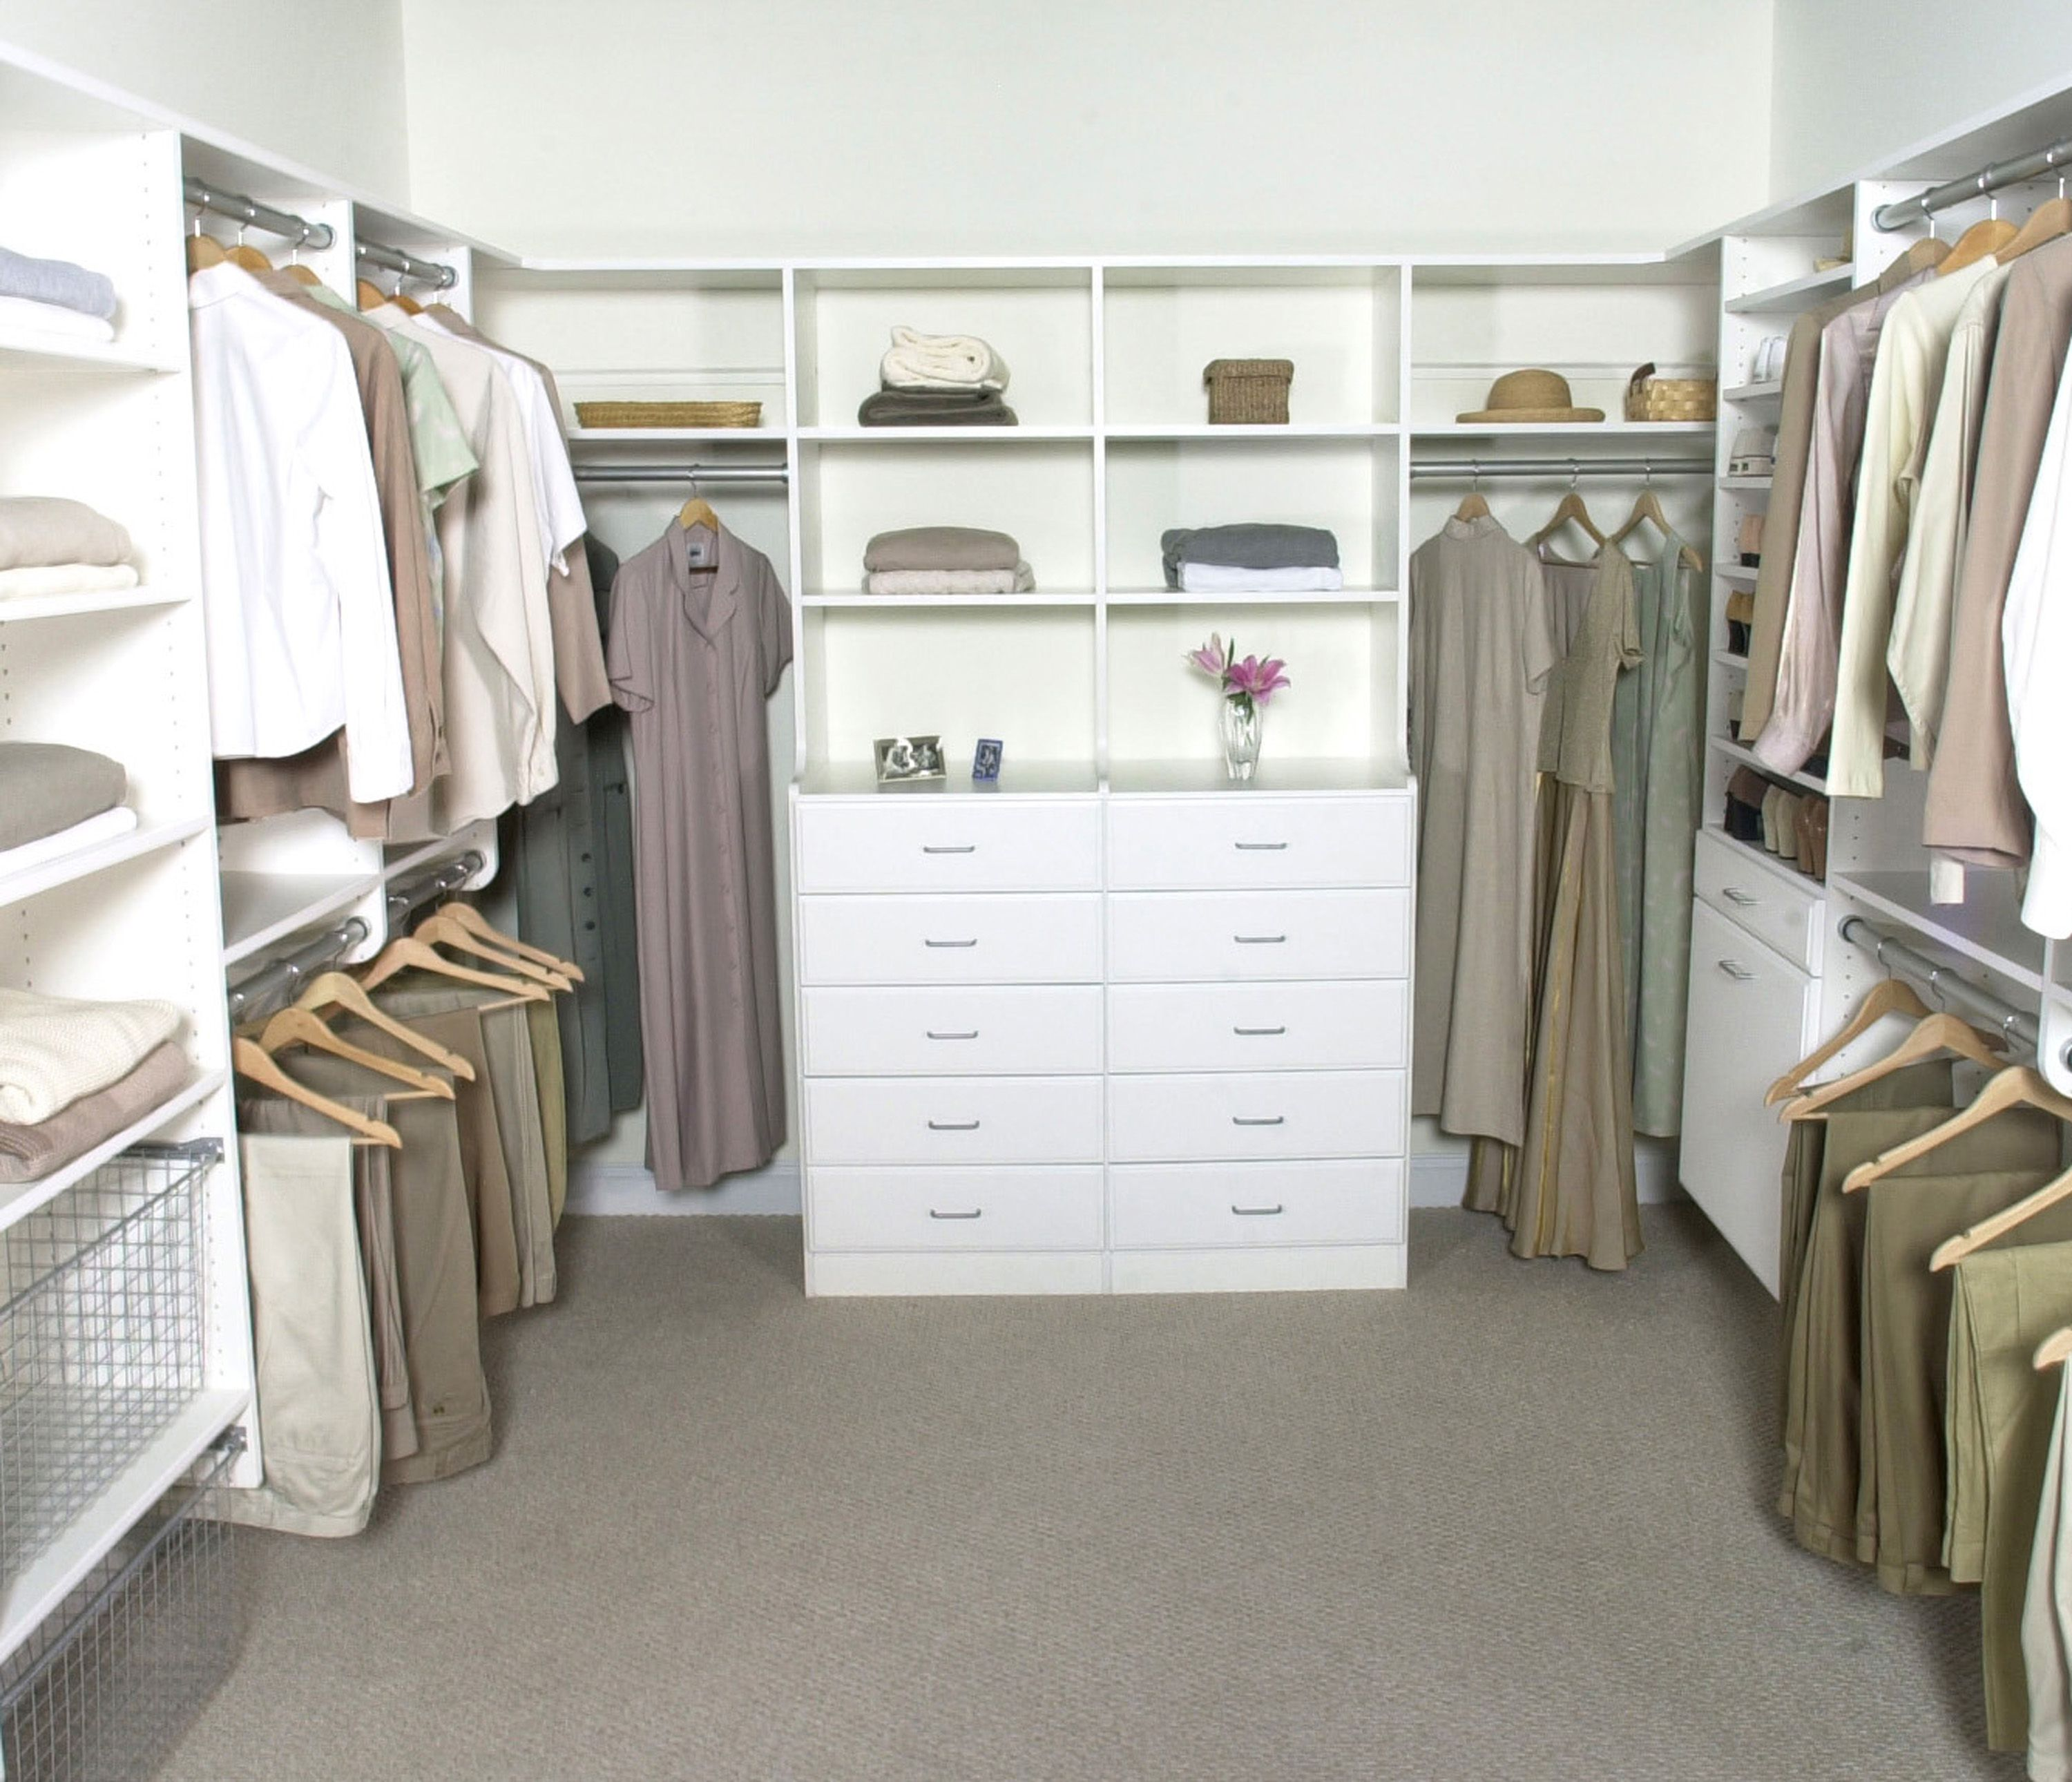 A Simple Yet Realistic Closet Design His On One Side Her S